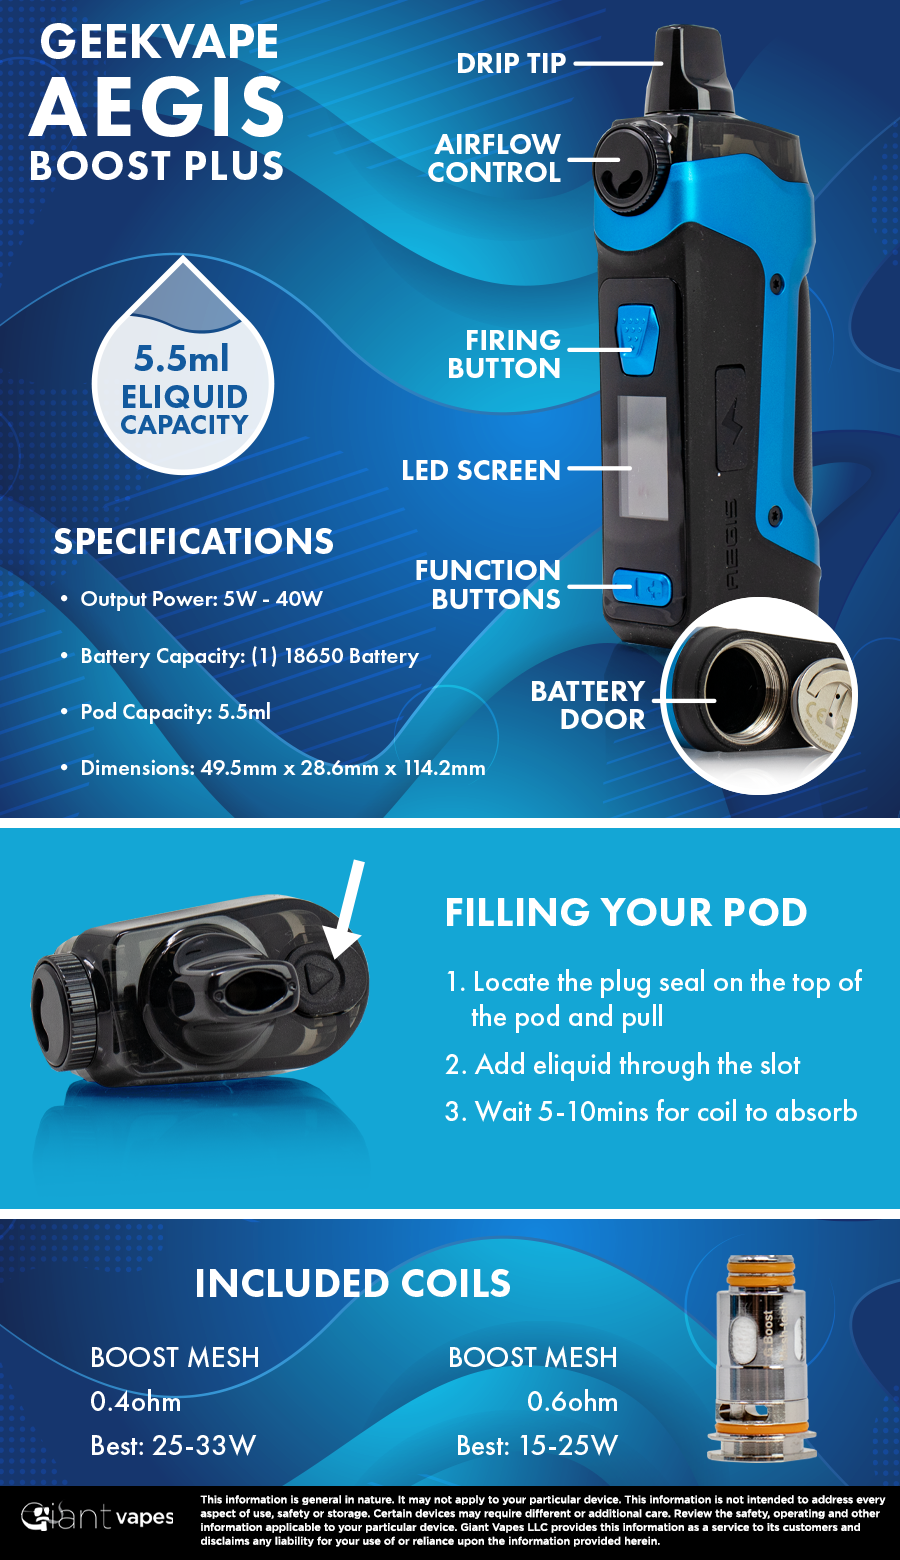 GeekVape Aegis Boost Plus Infographic